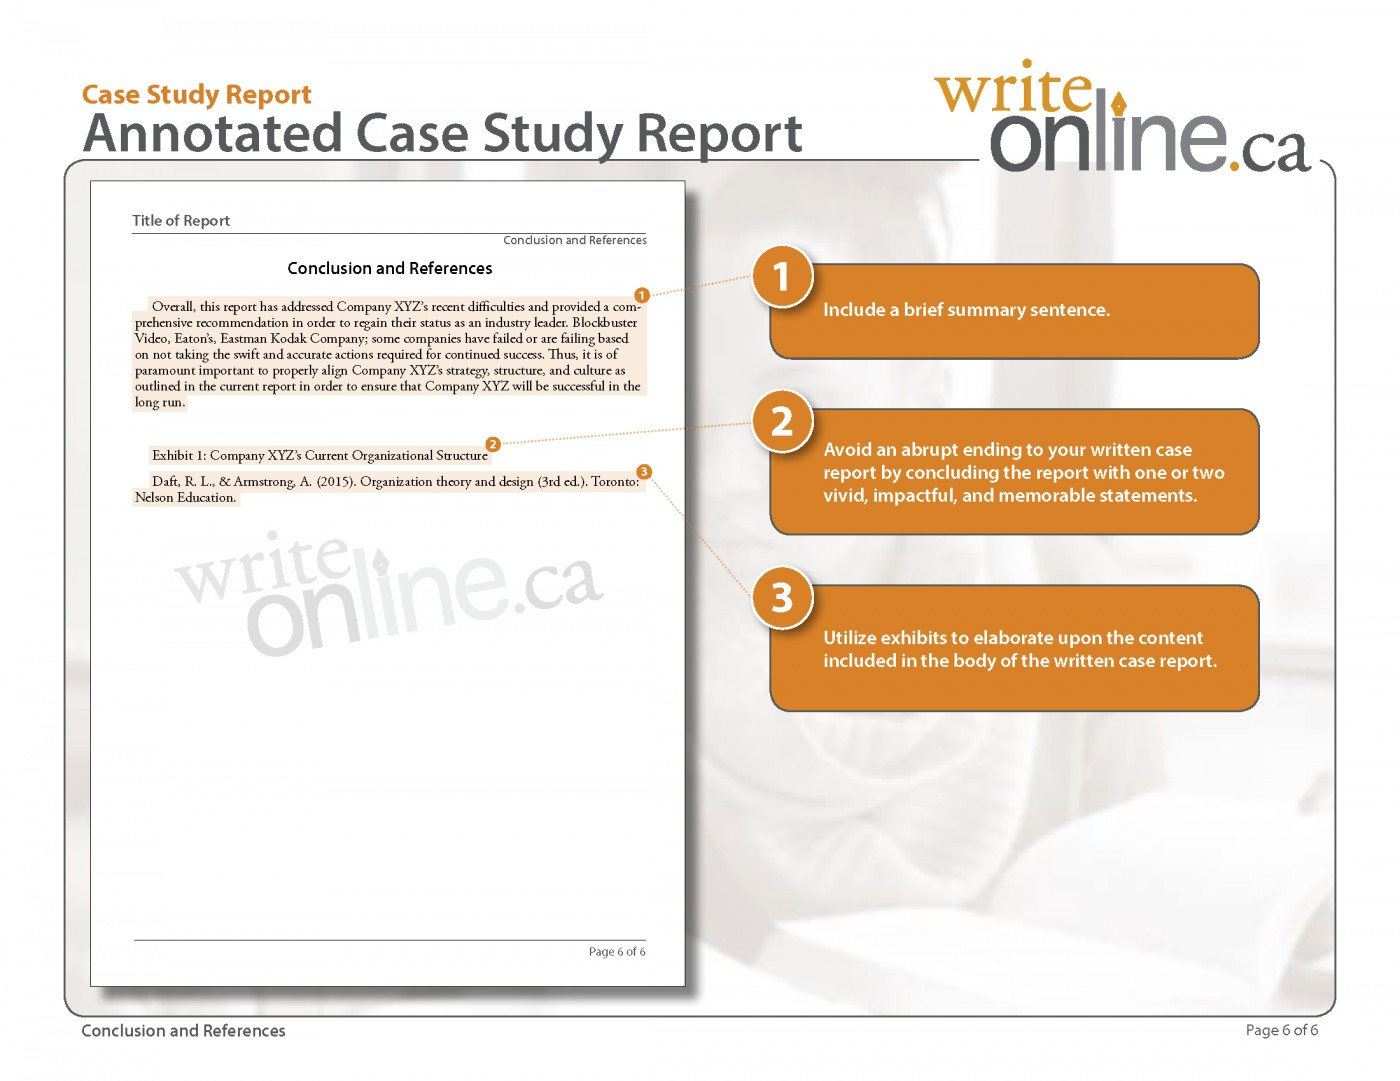 013 Casestudy Annotatedfull Page 6 Component Of Research Paper Archaicawful Pdf Parts Chapter 1 1-5 1400